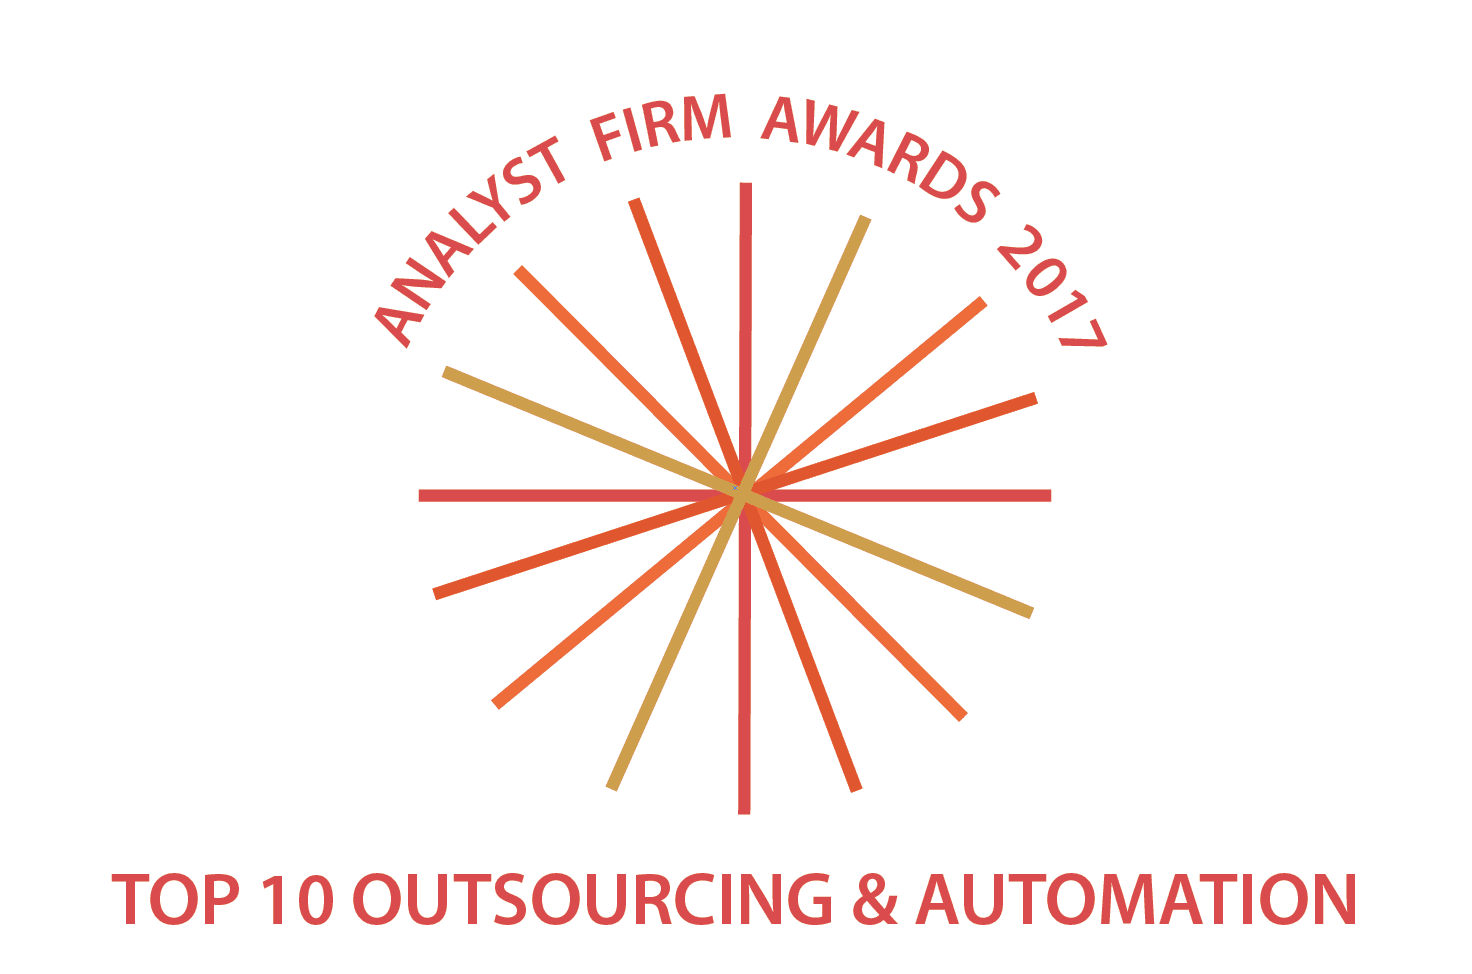 HfS Research overtakes Forrester in 2017 Outsourcing & Automation Analyst Firm Awards